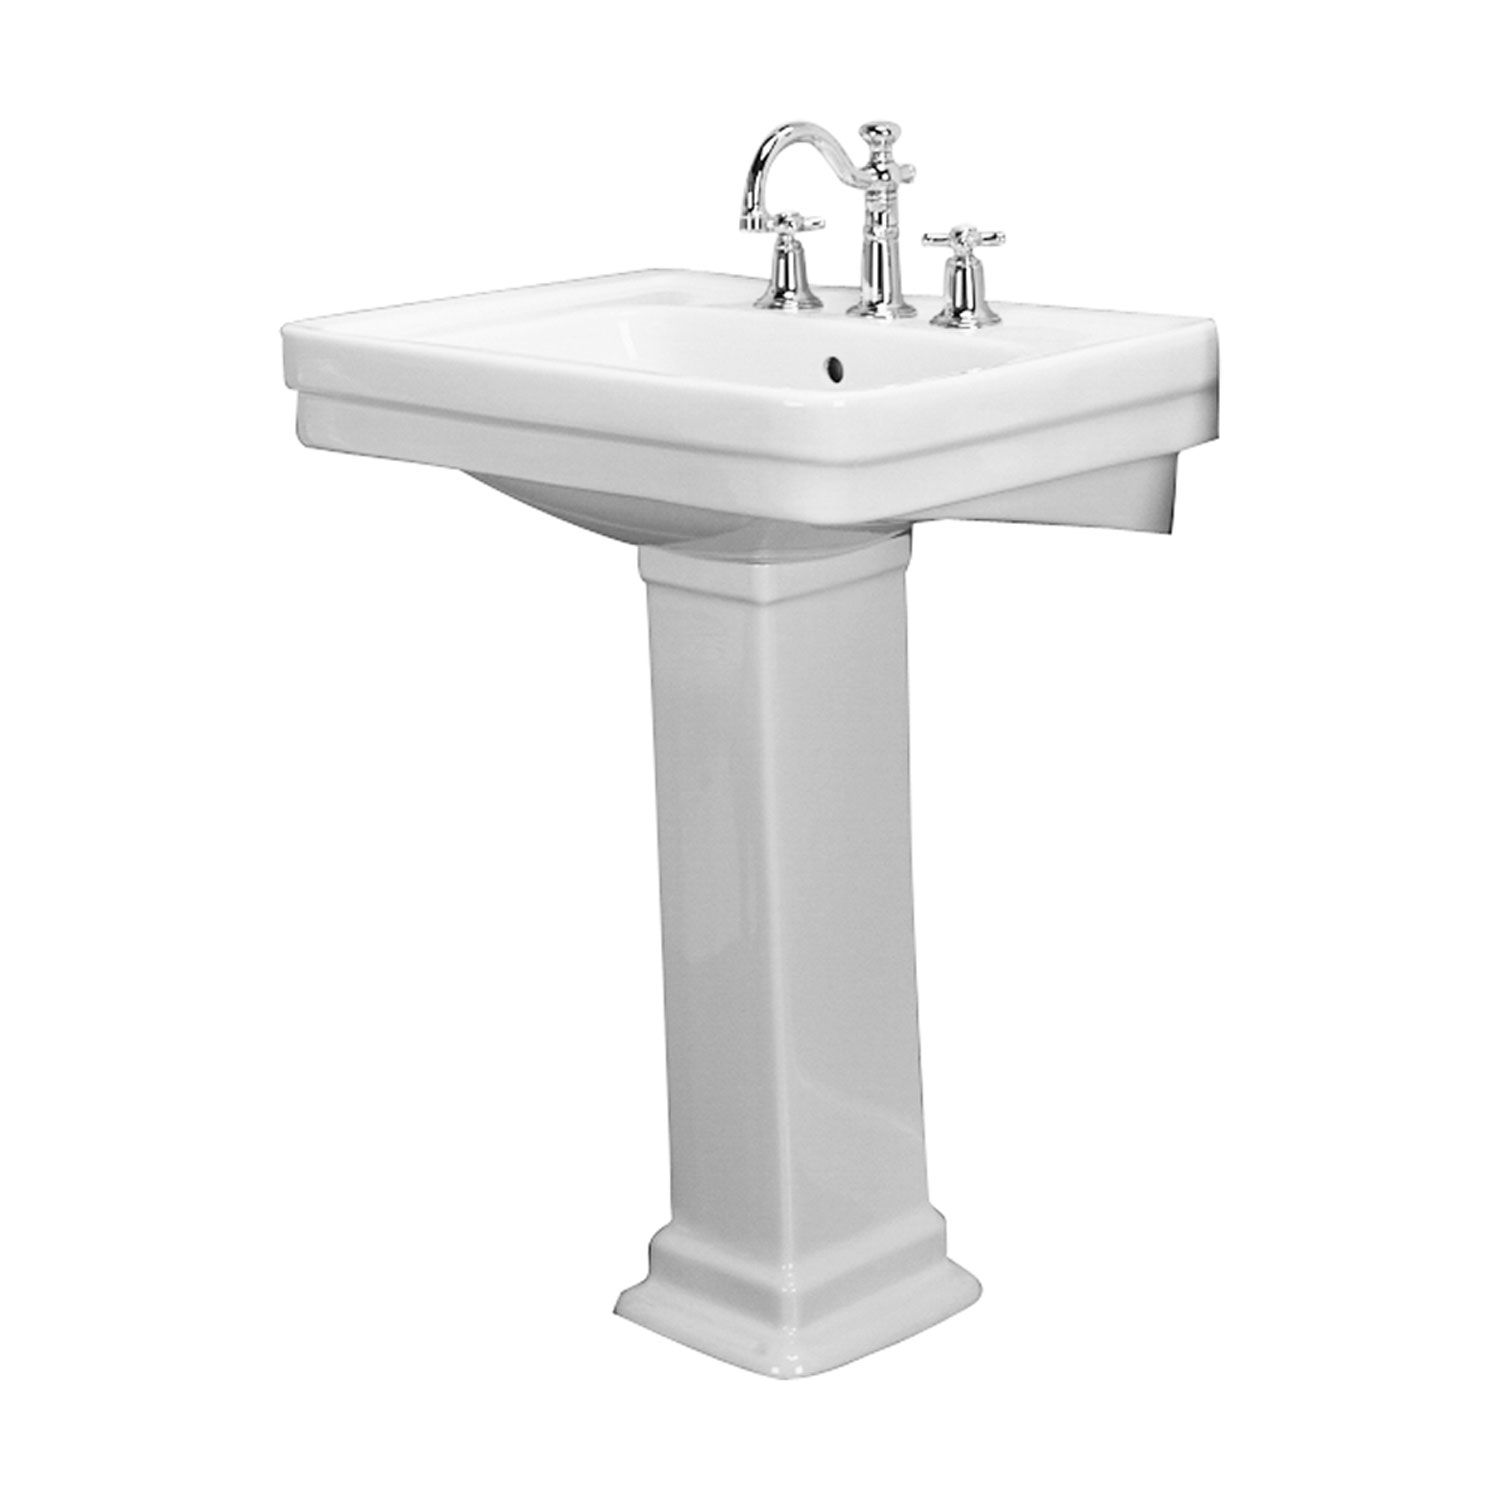 Barclay Products Sussex White 550 Pedestal Sink 8 Inch Widespread 3 648wh Bellacor Pedestal Bathroom Sink Pedestal Sink Barclay Products [ 1500 x 1500 Pixel ]